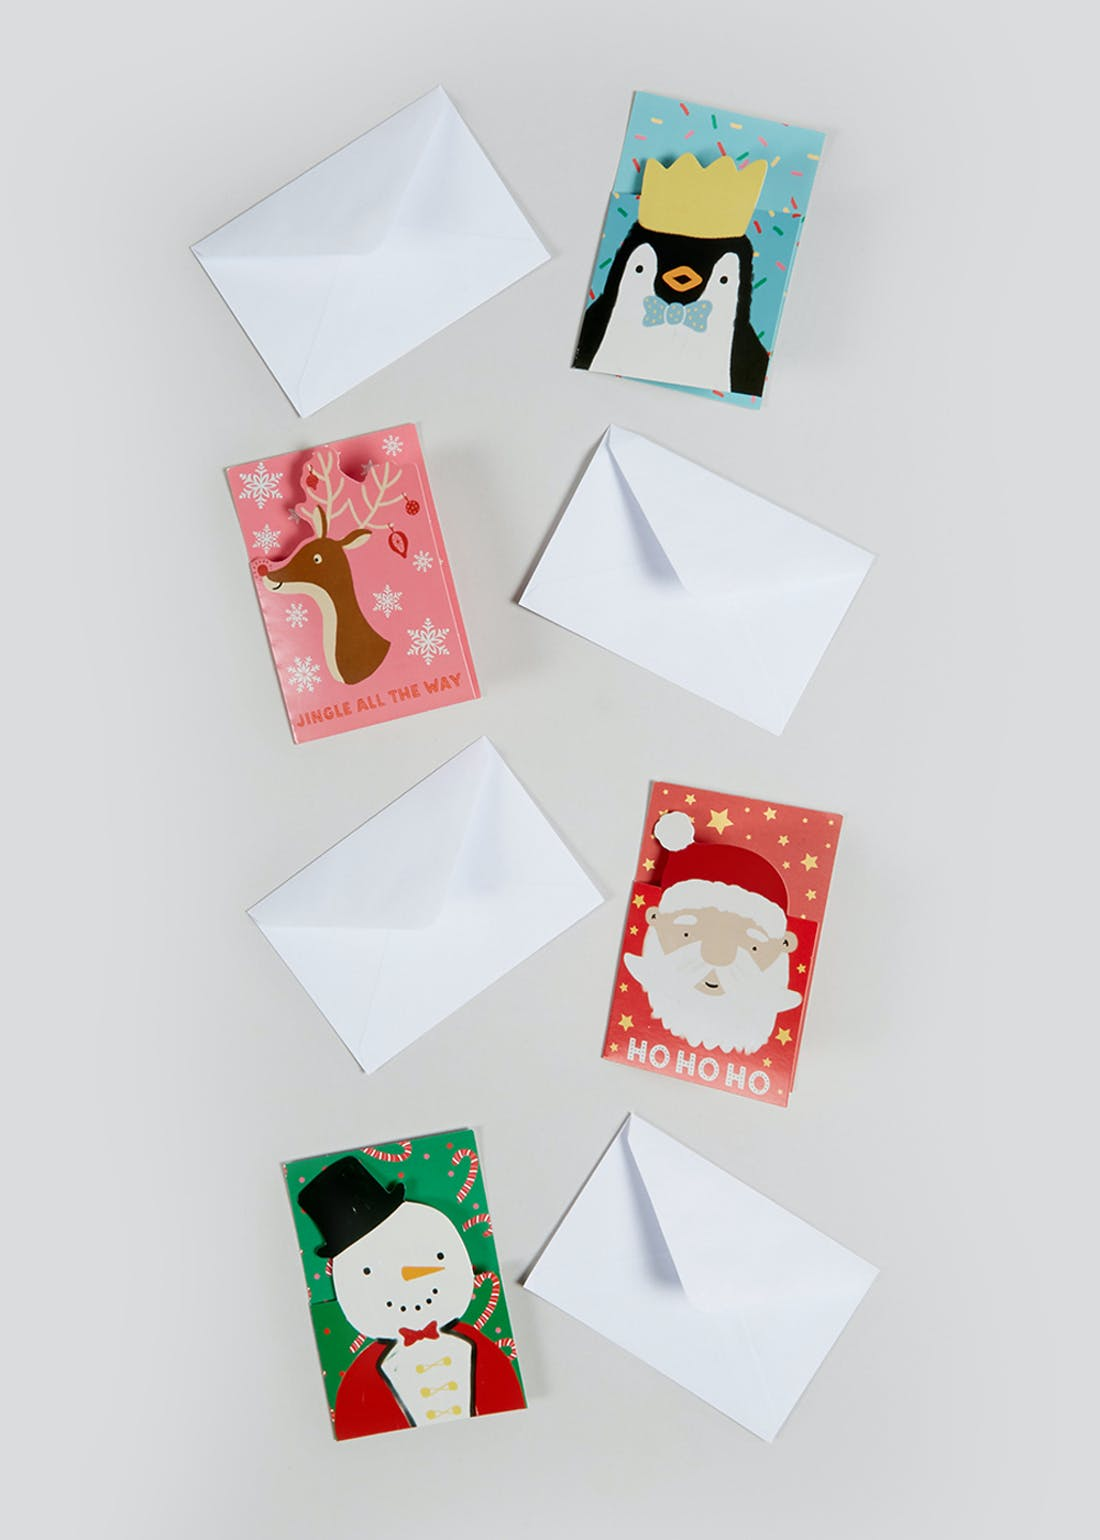 30 Pack Kids Cut Out Christmas Cards (9cm x 6.5cm)